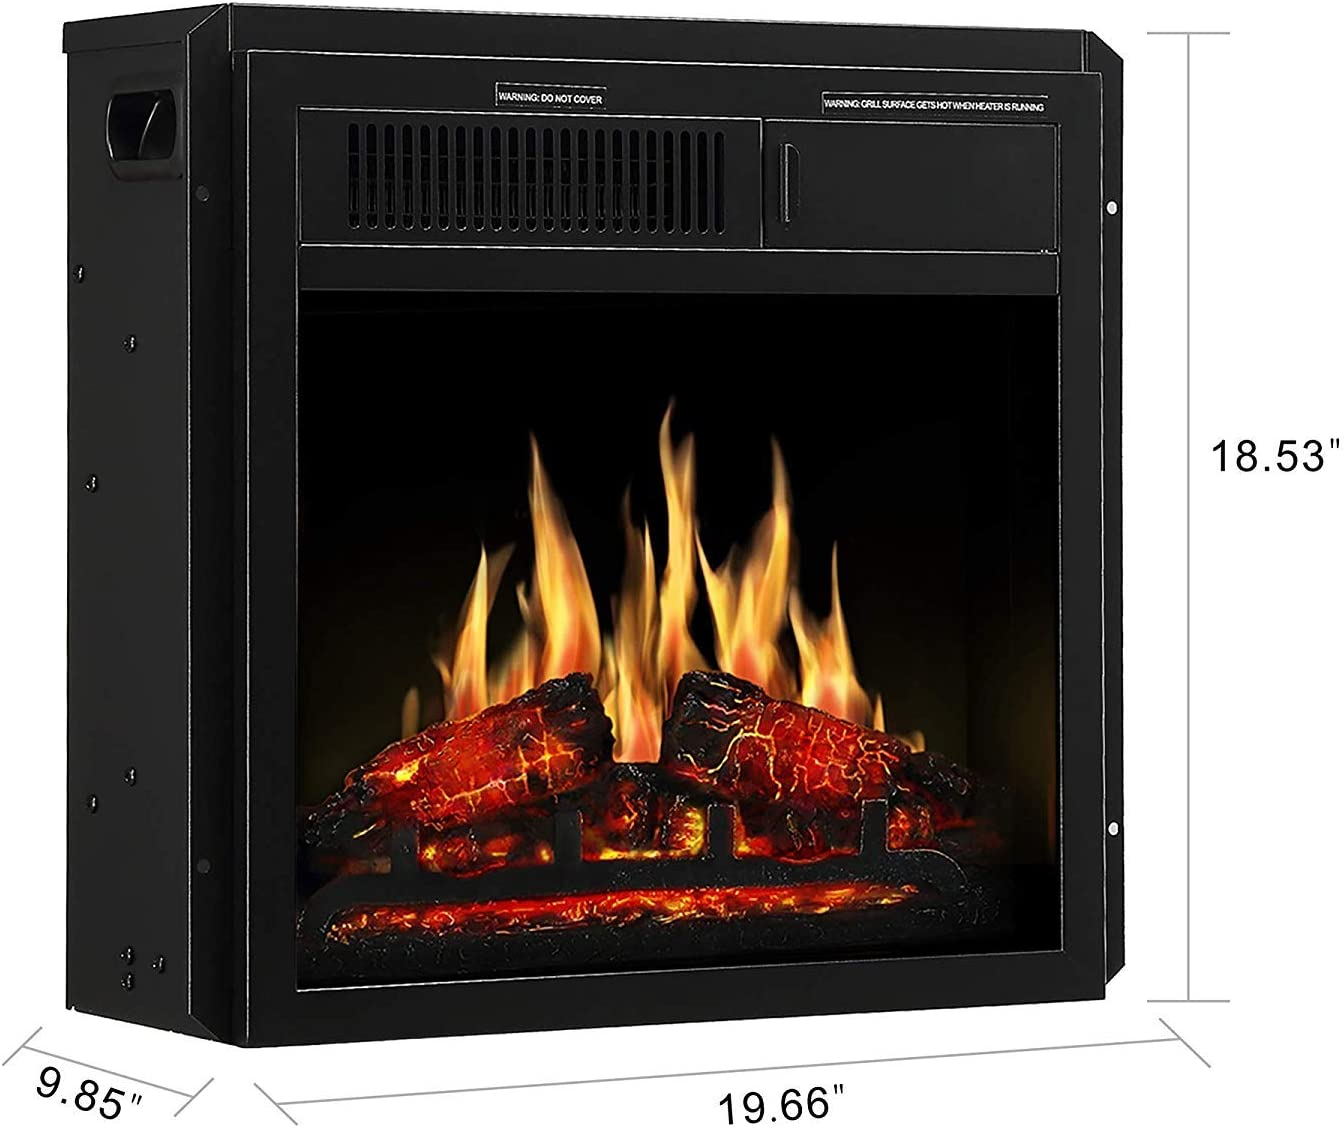 JAMFLY 18Inch Built In Electric Fireplace